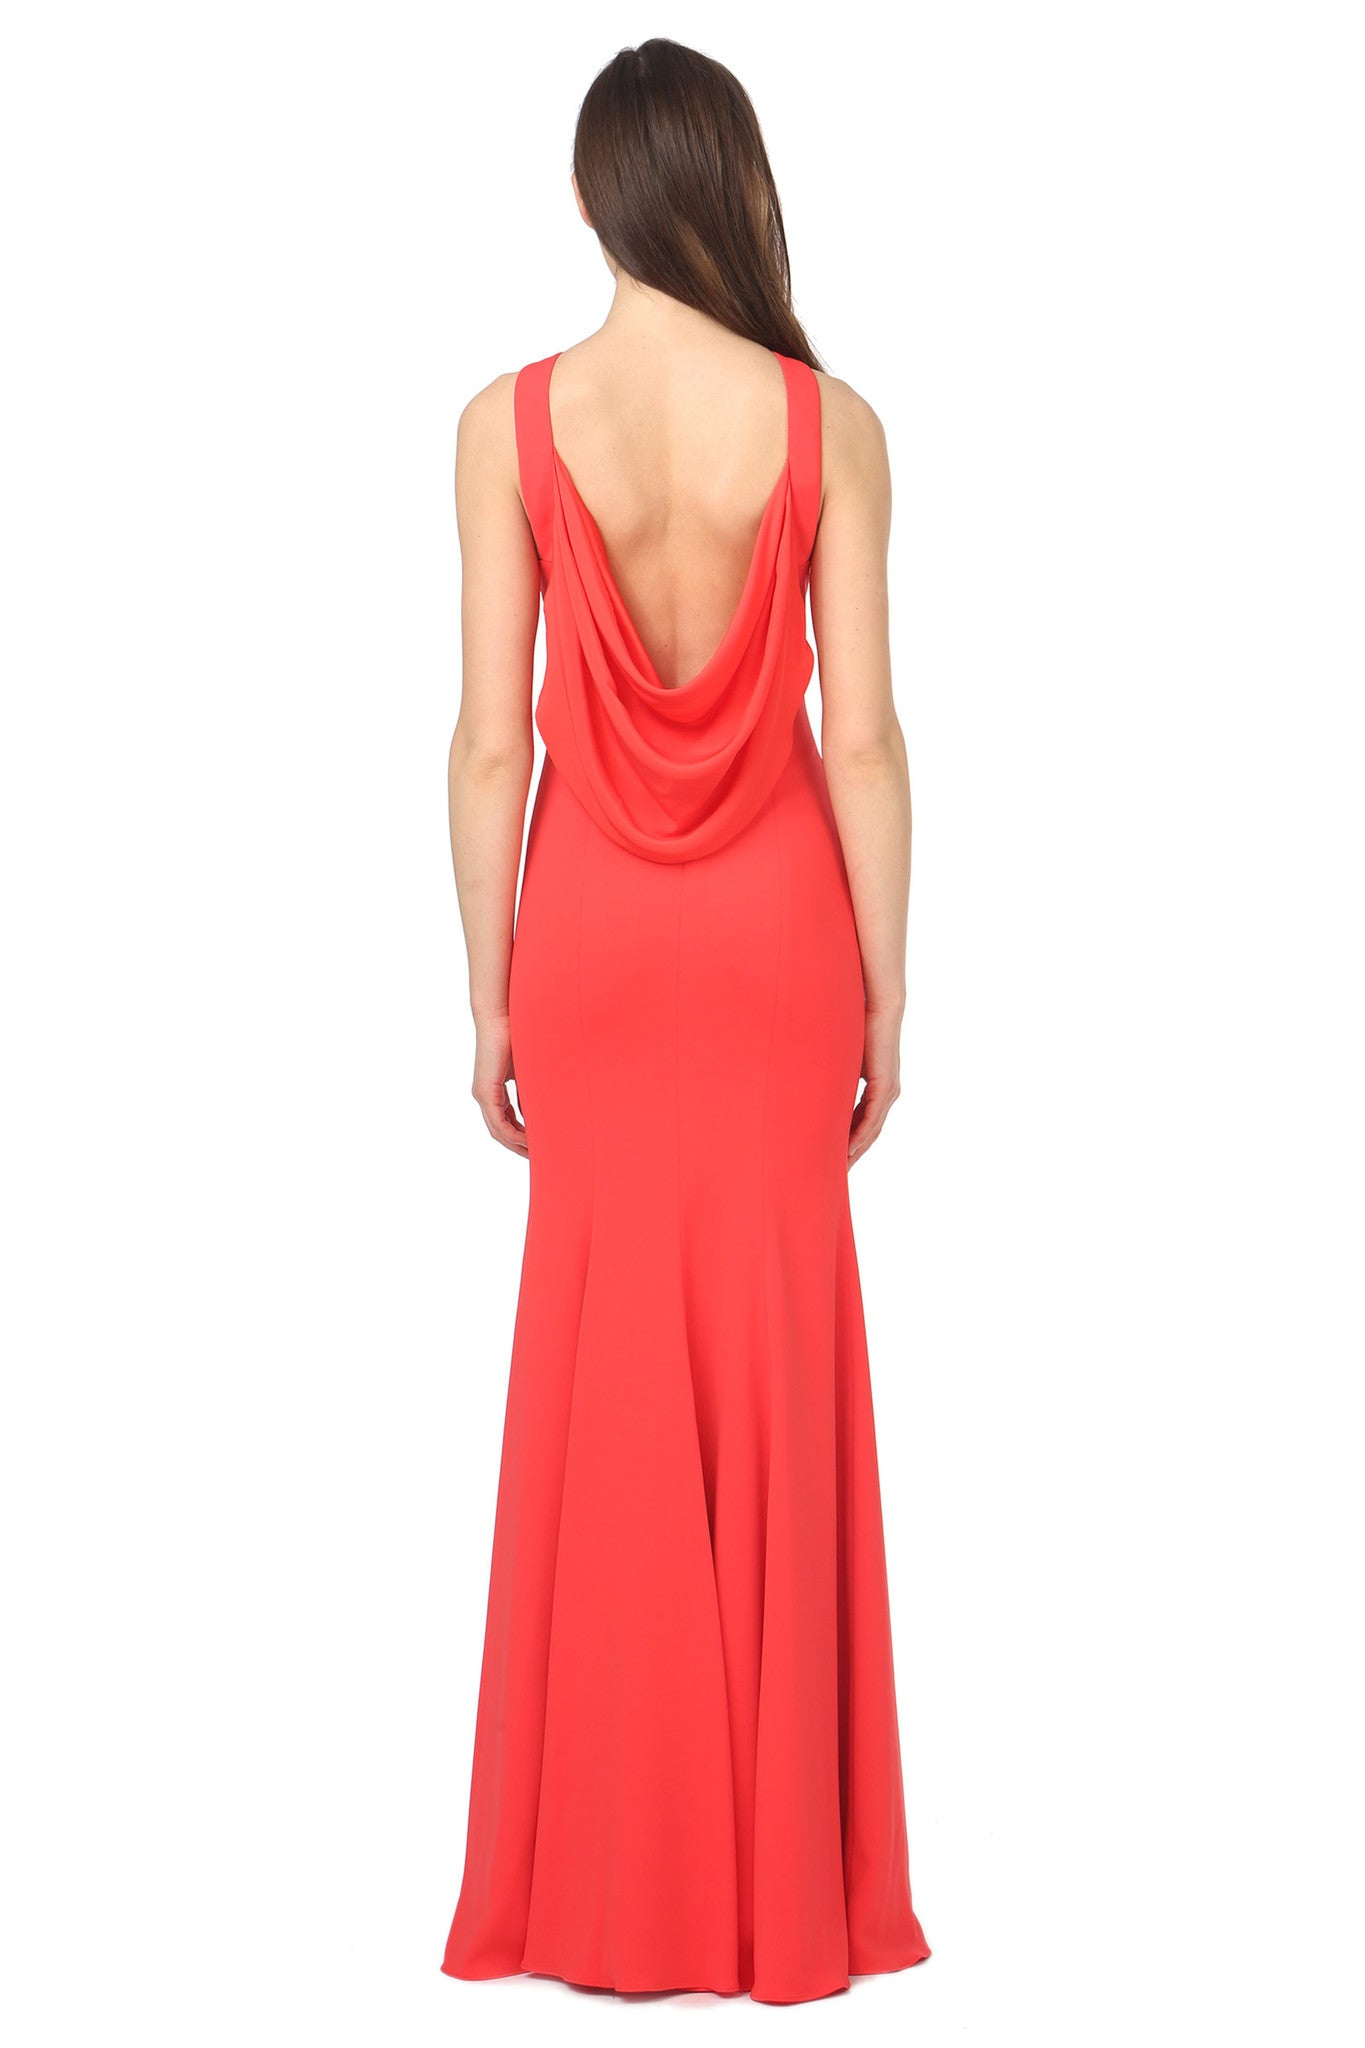 Jay Godfrey Red Draped Back Gown - Back View